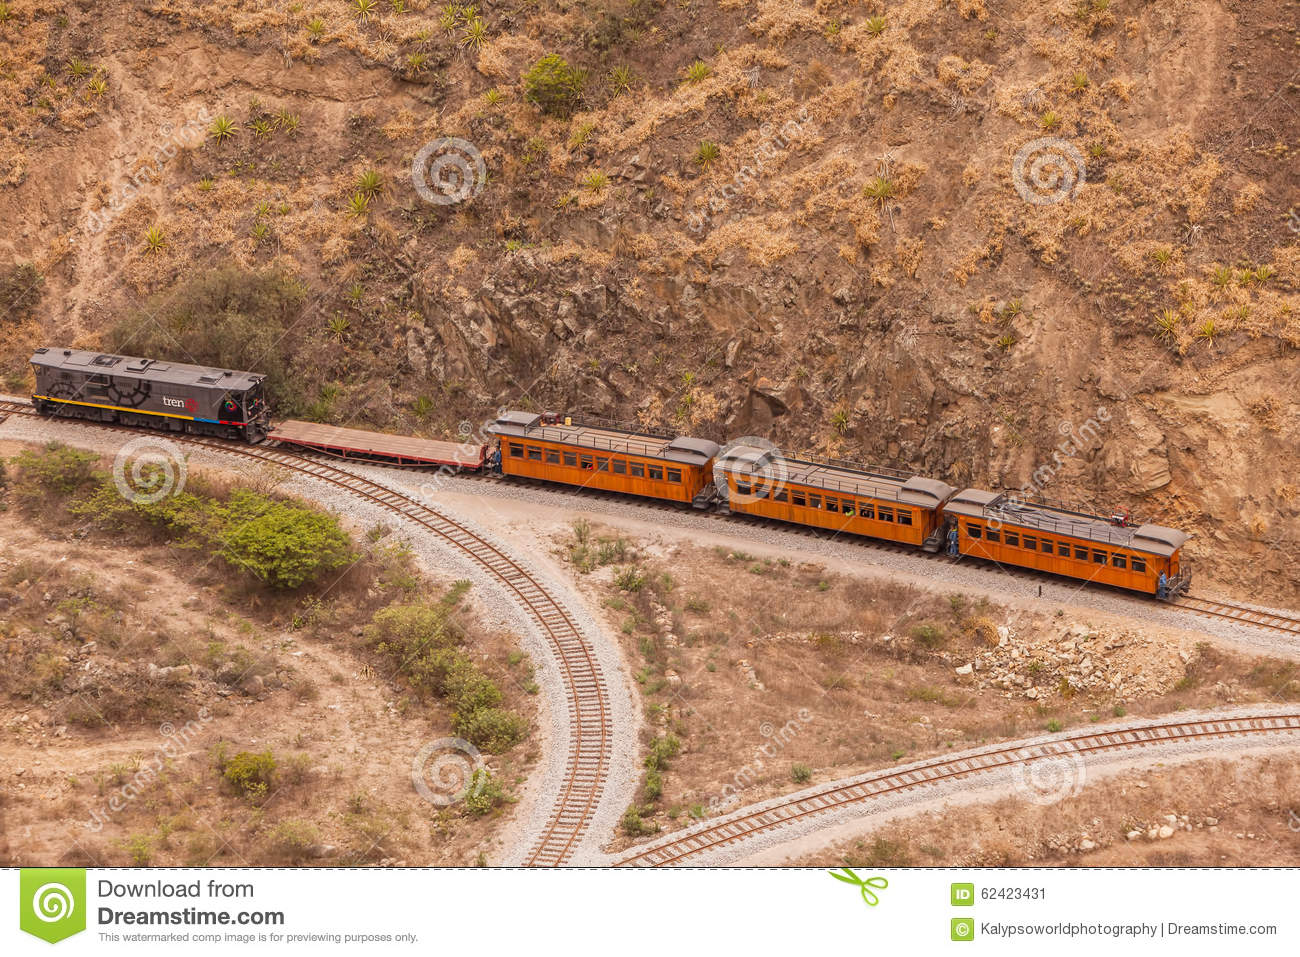 Andean railway clipart #9